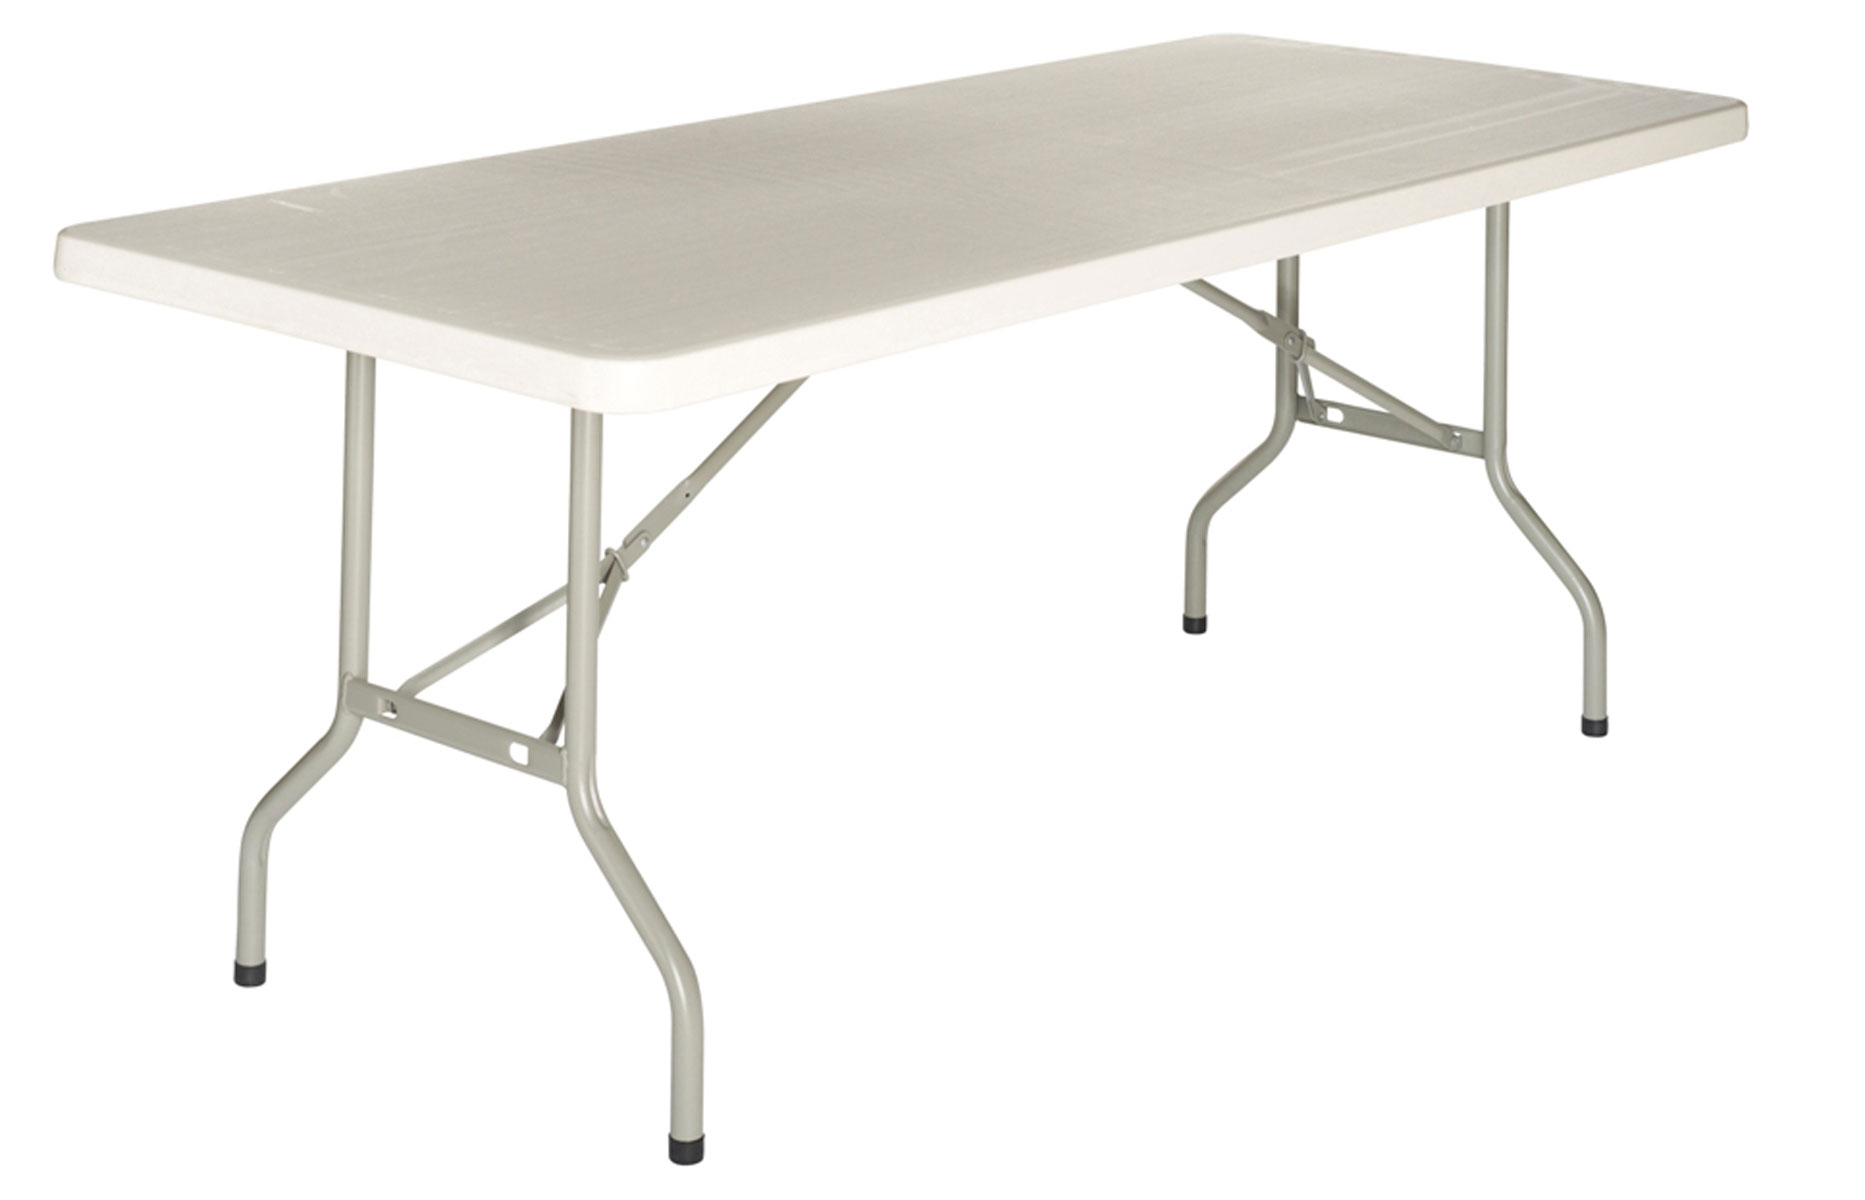 Table pliante en plastique tulle table pliante en for Table de cuisine pliante leroy merlin